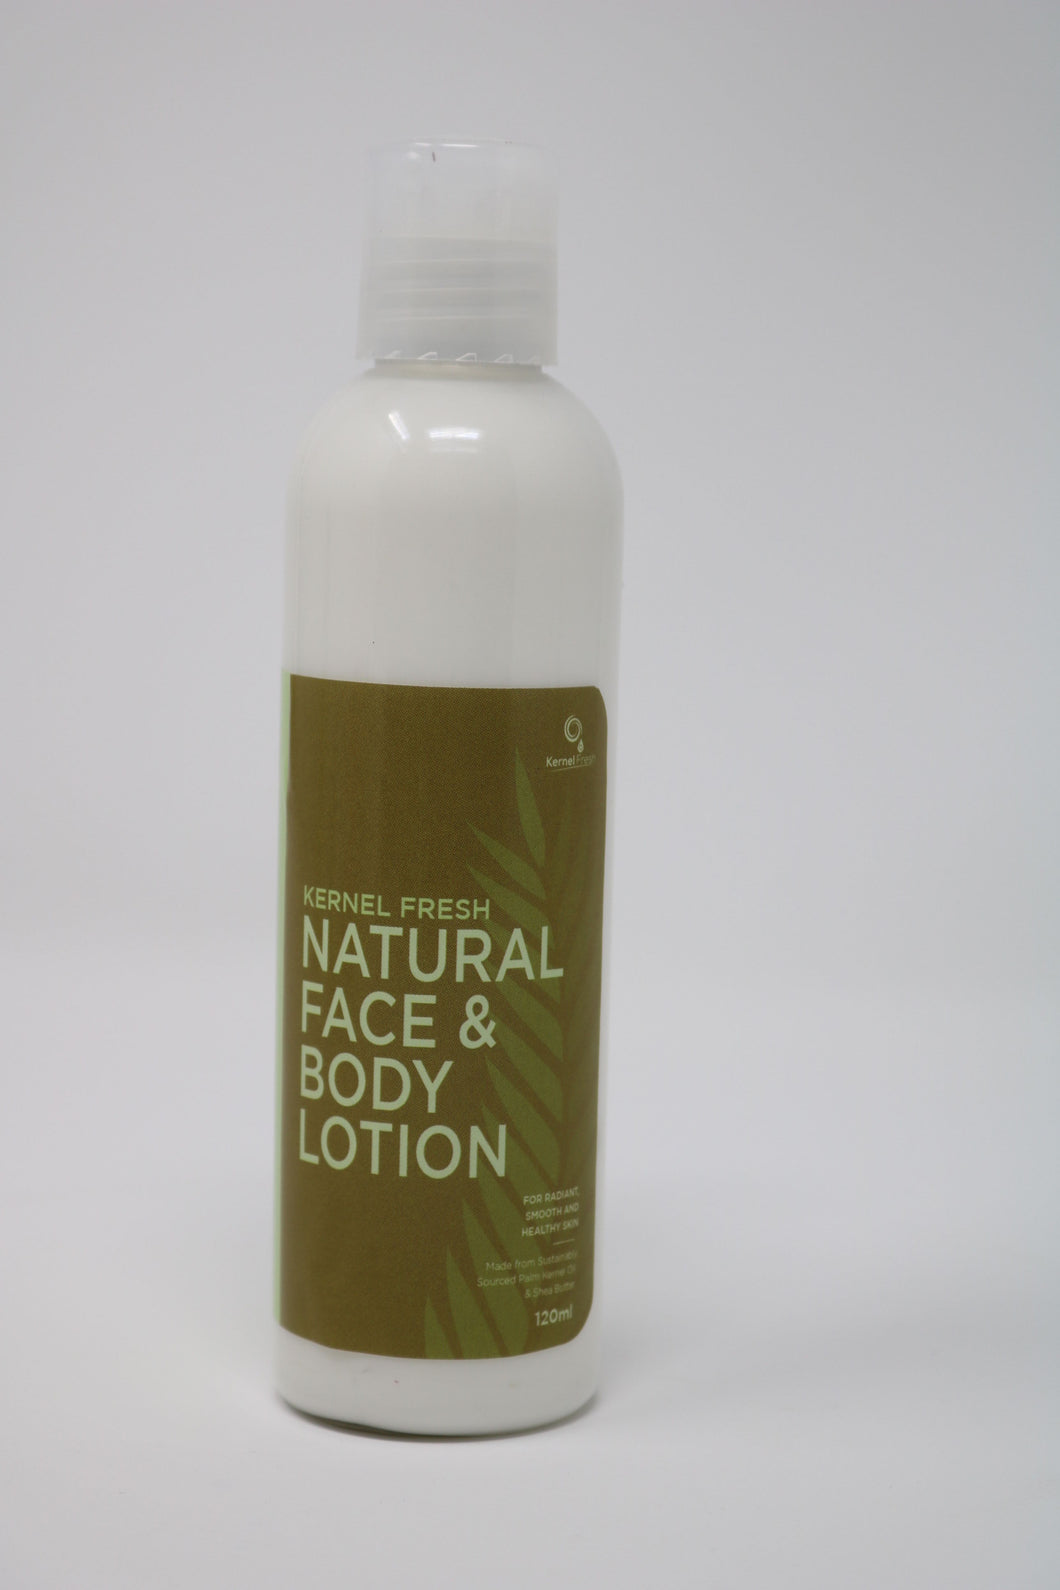 Kernel Fresh Premium Face and Body Lotion